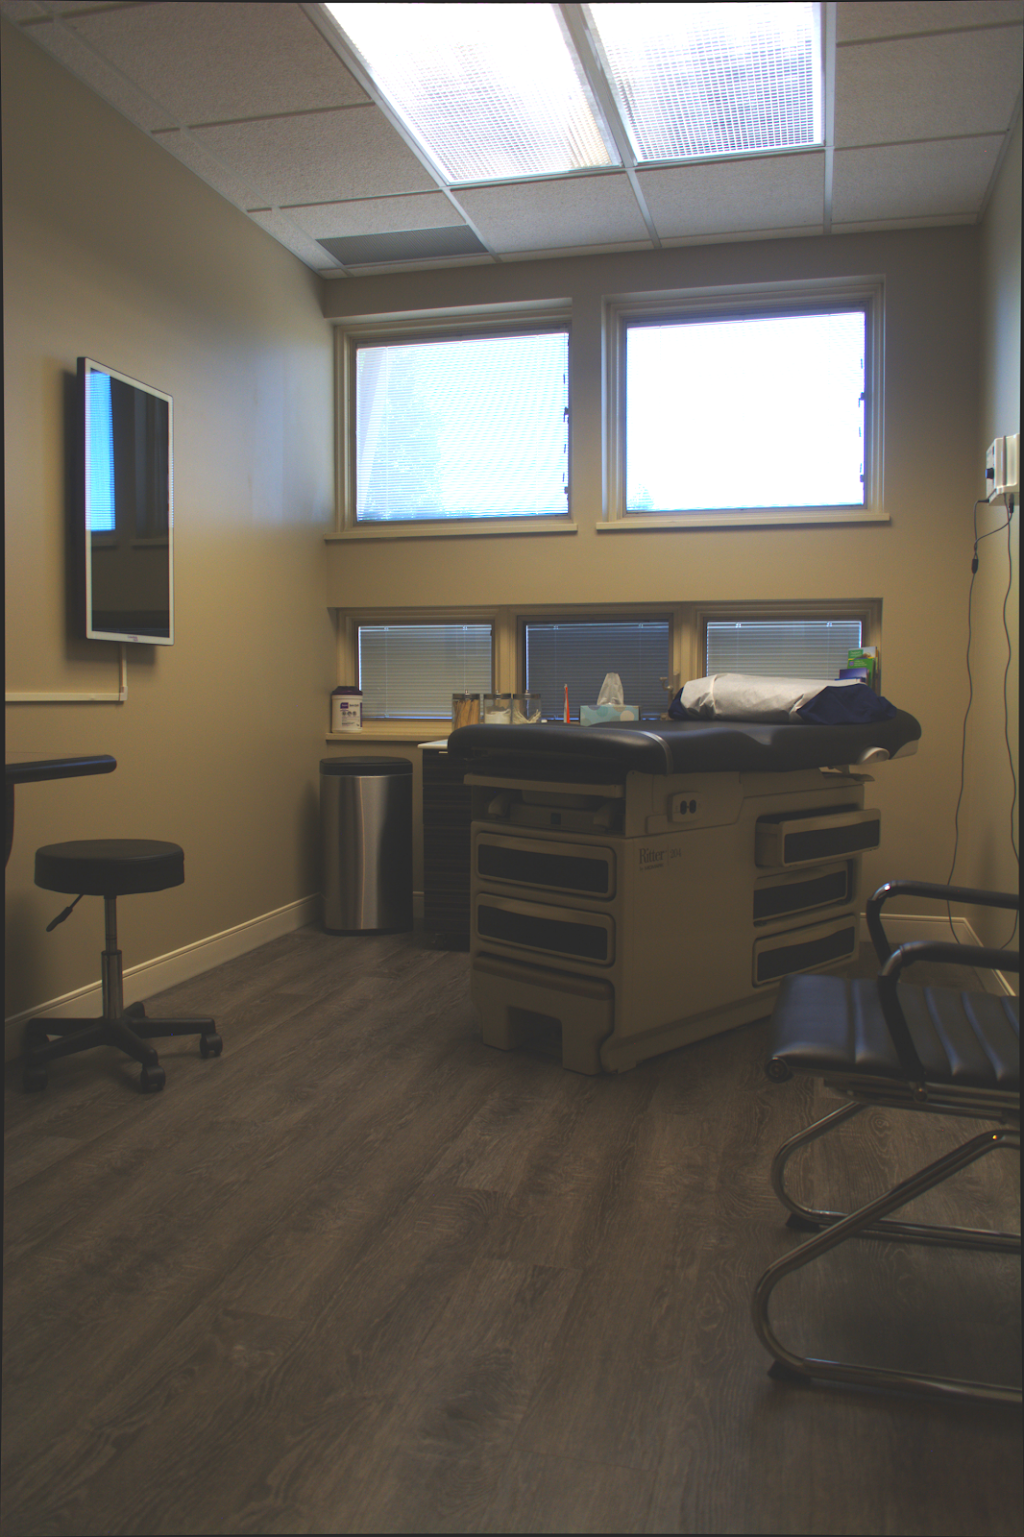 Dermatology Specialists - Louisville - hair care  | Photo 10 of 10 | Address: 1056 S 88th St, Louisville, CO 80027, USA | Phone: (303) 442-6647